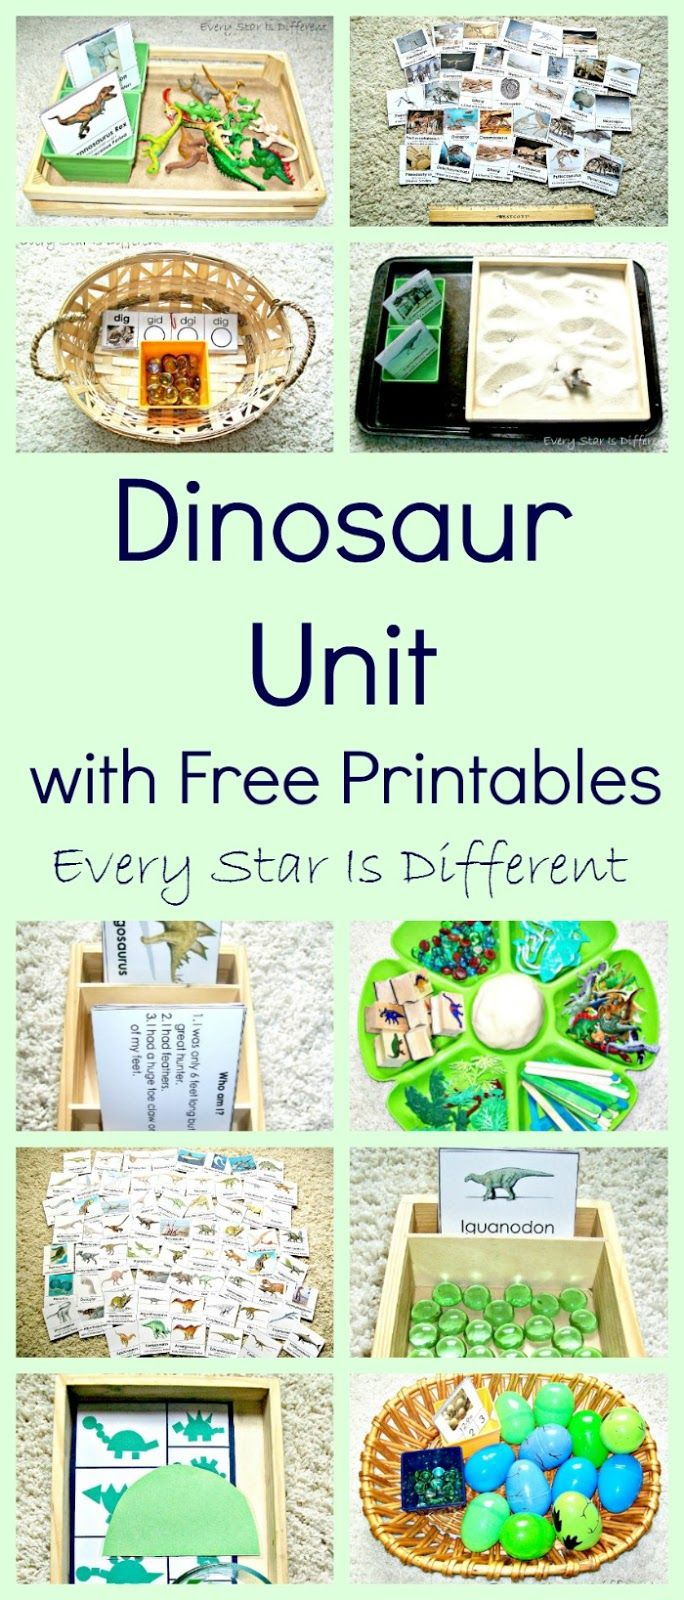 Dinosaur Unit w/ Free Printables | Learning activities, Free ...